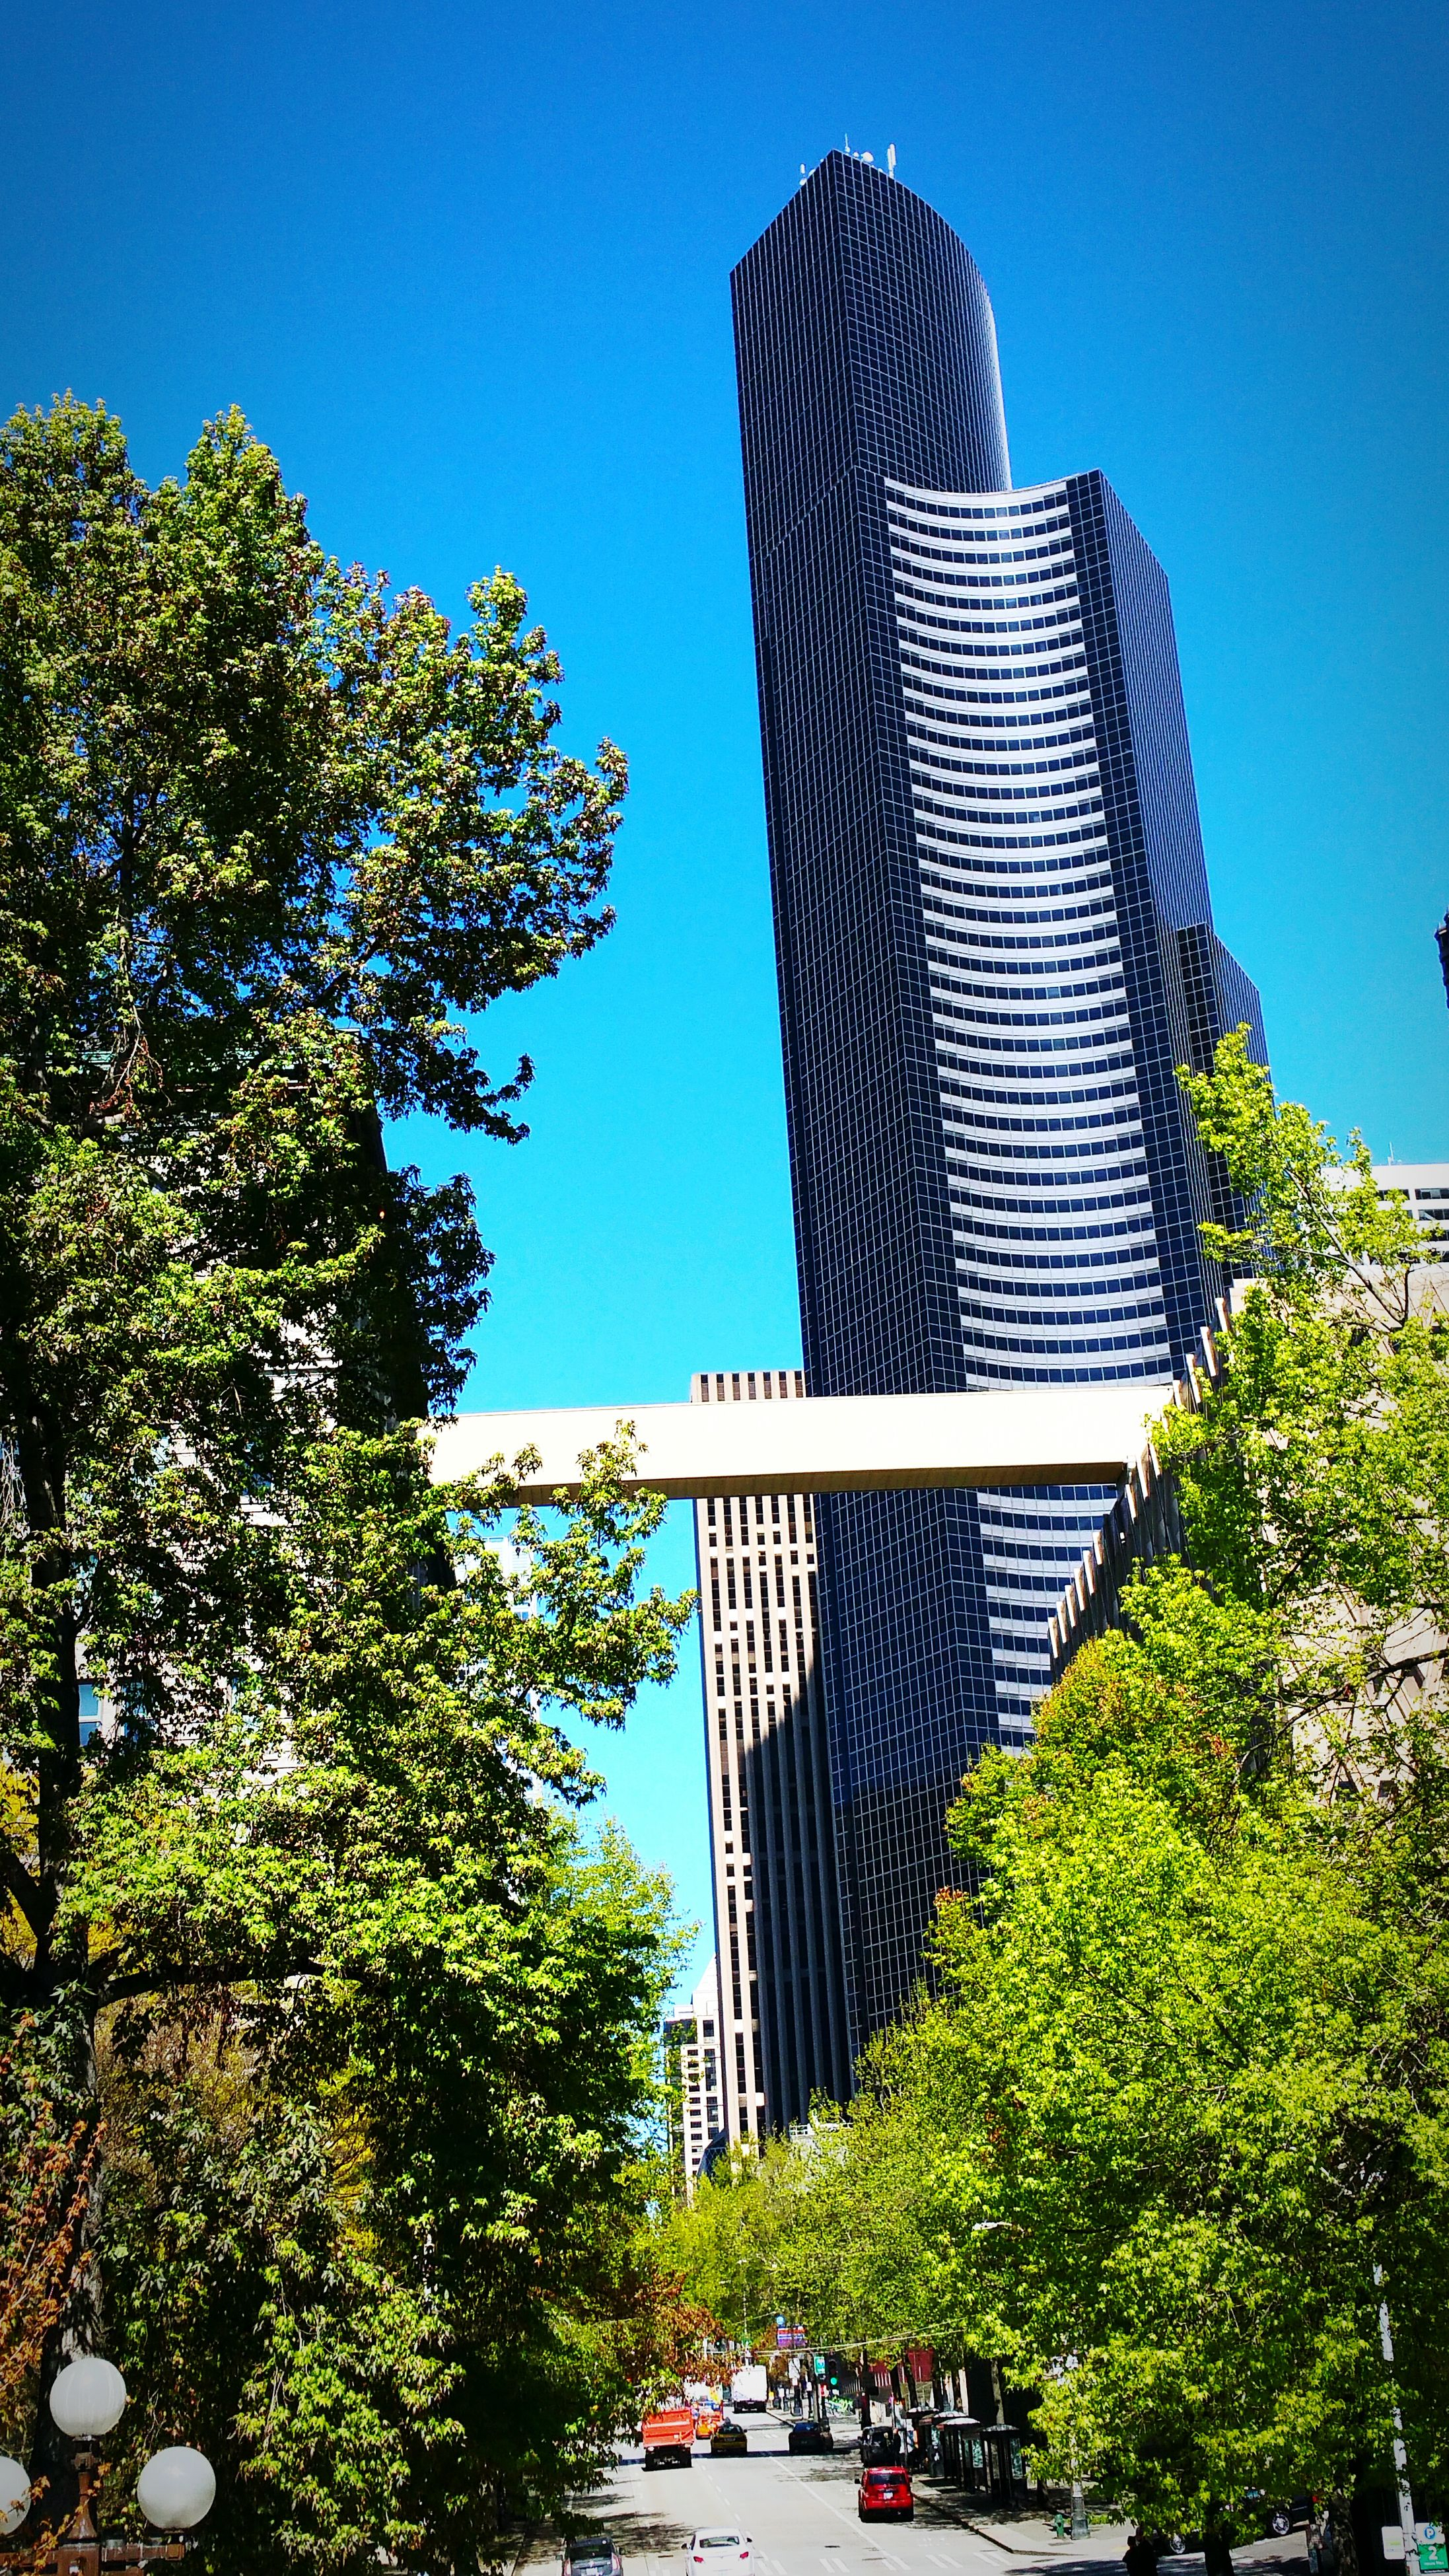 clear sky, architecture, built structure, tree, low angle view, building exterior, blue, tall - high, modern, skyscraper, city, tower, office building, growth, sunlight, tall, transportation, day, outdoors, copy space